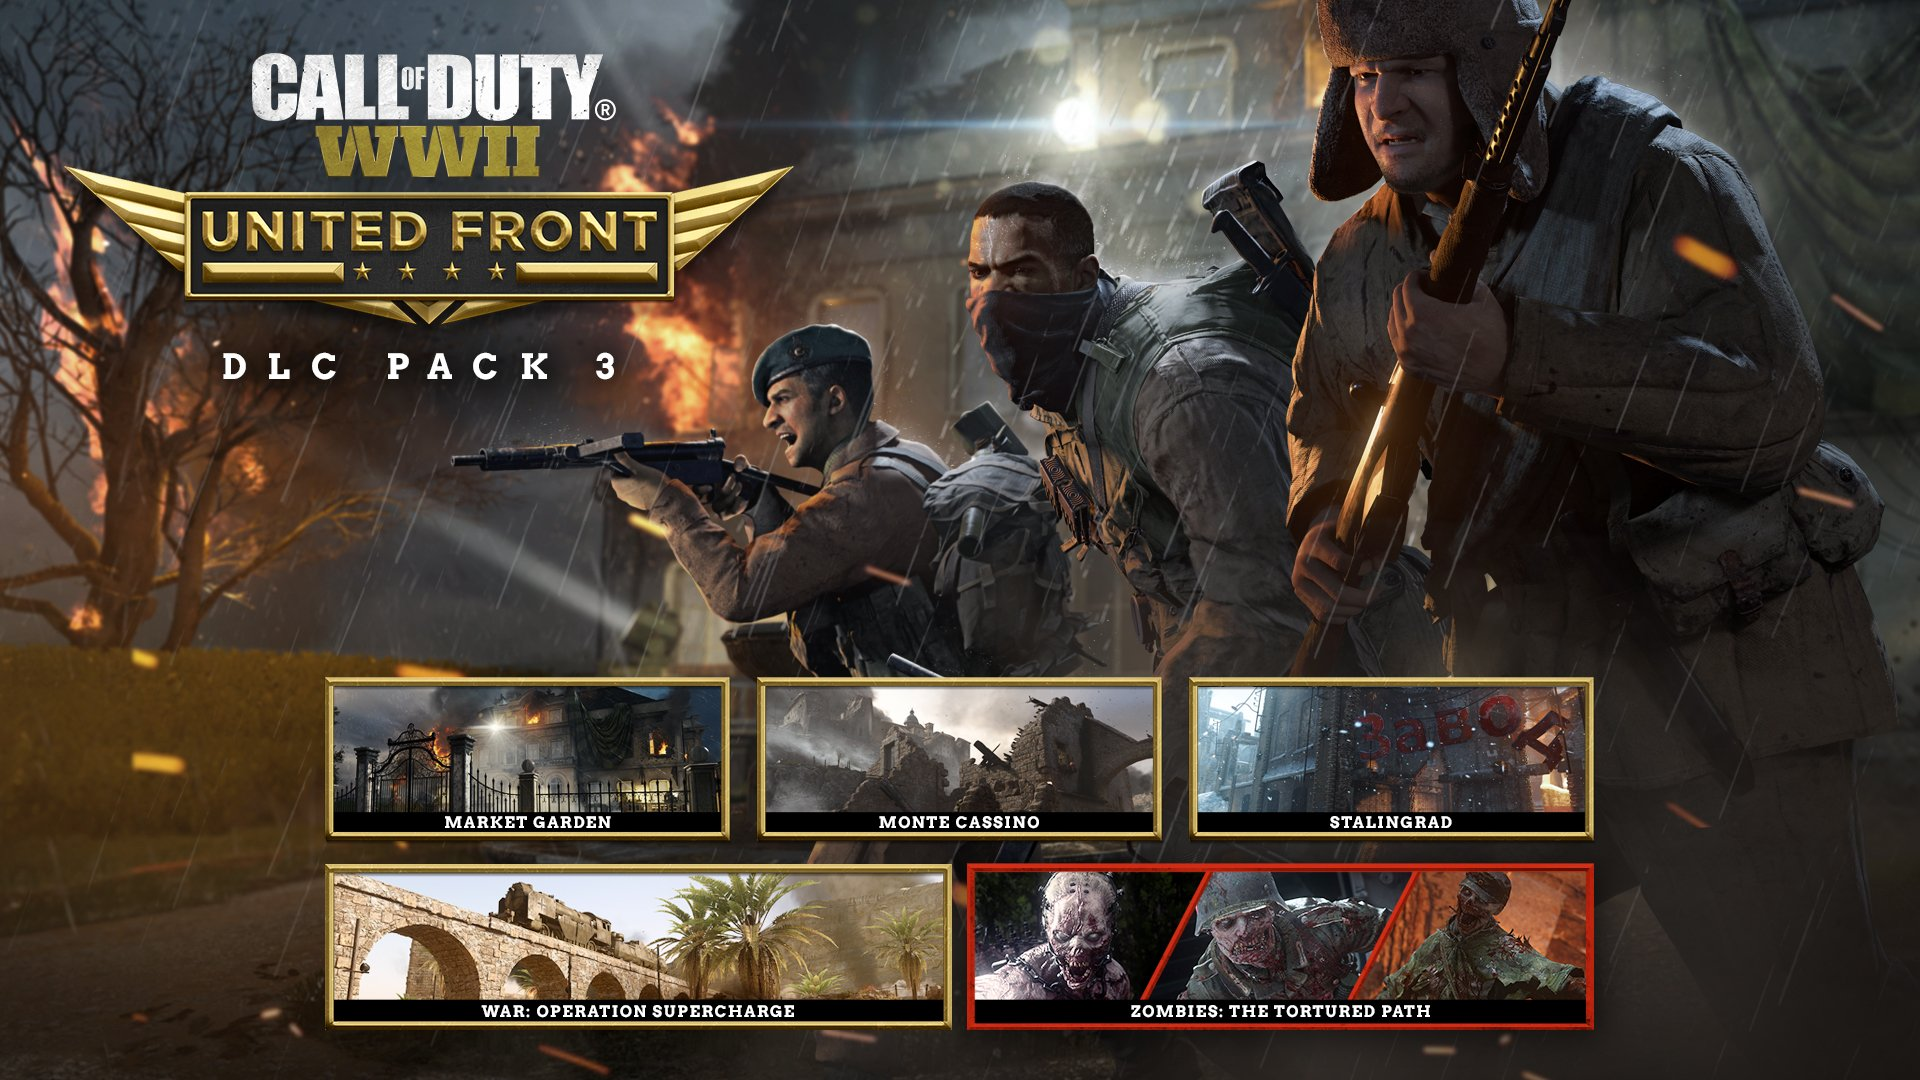 We Have Just Picked Up The Achievement List For United Front Dlc Call Of Duty Wwii